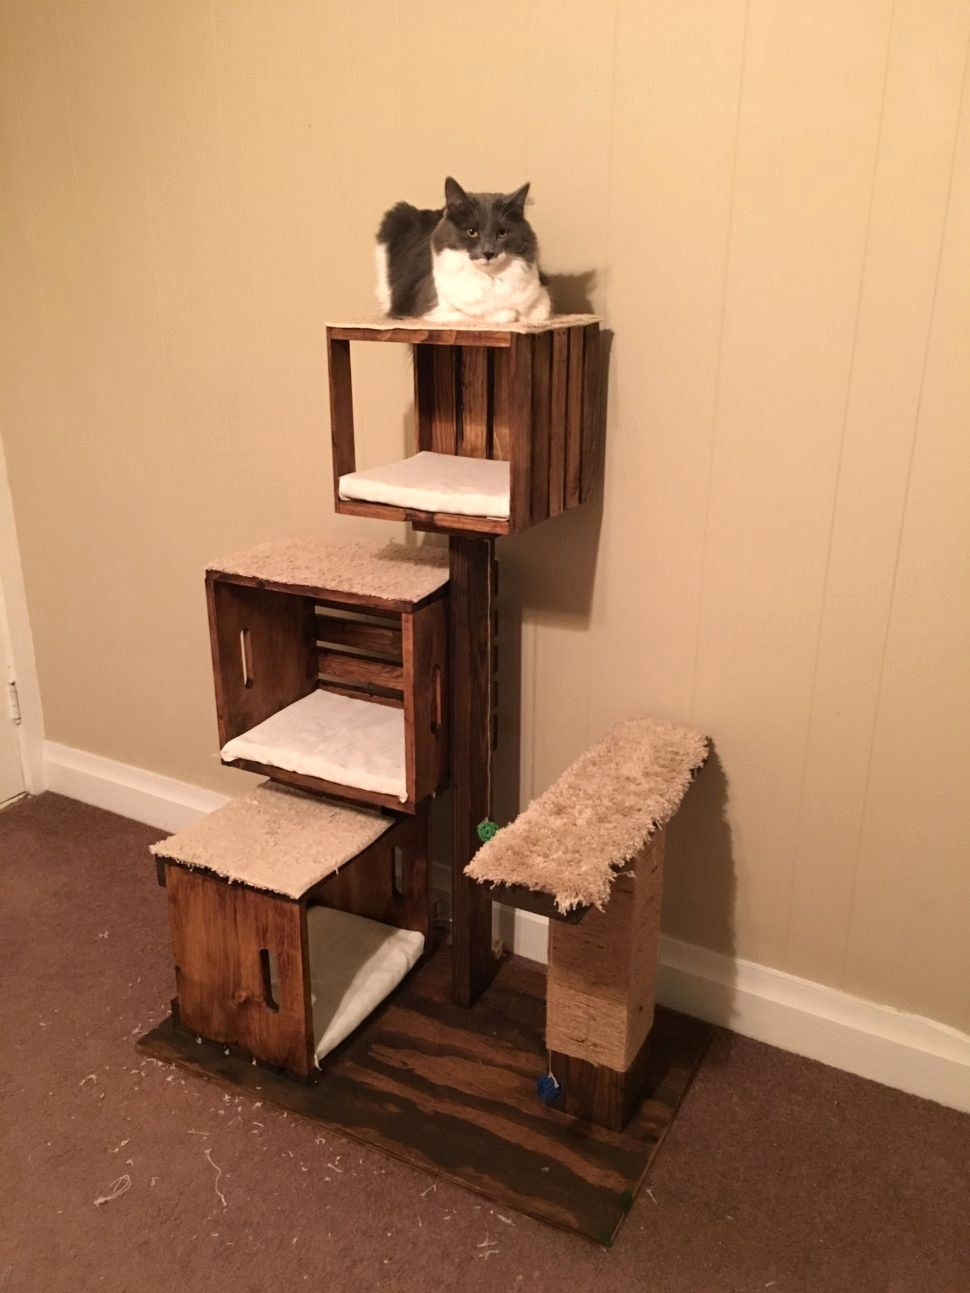 25 cool ideas for cat trees towers and other structures